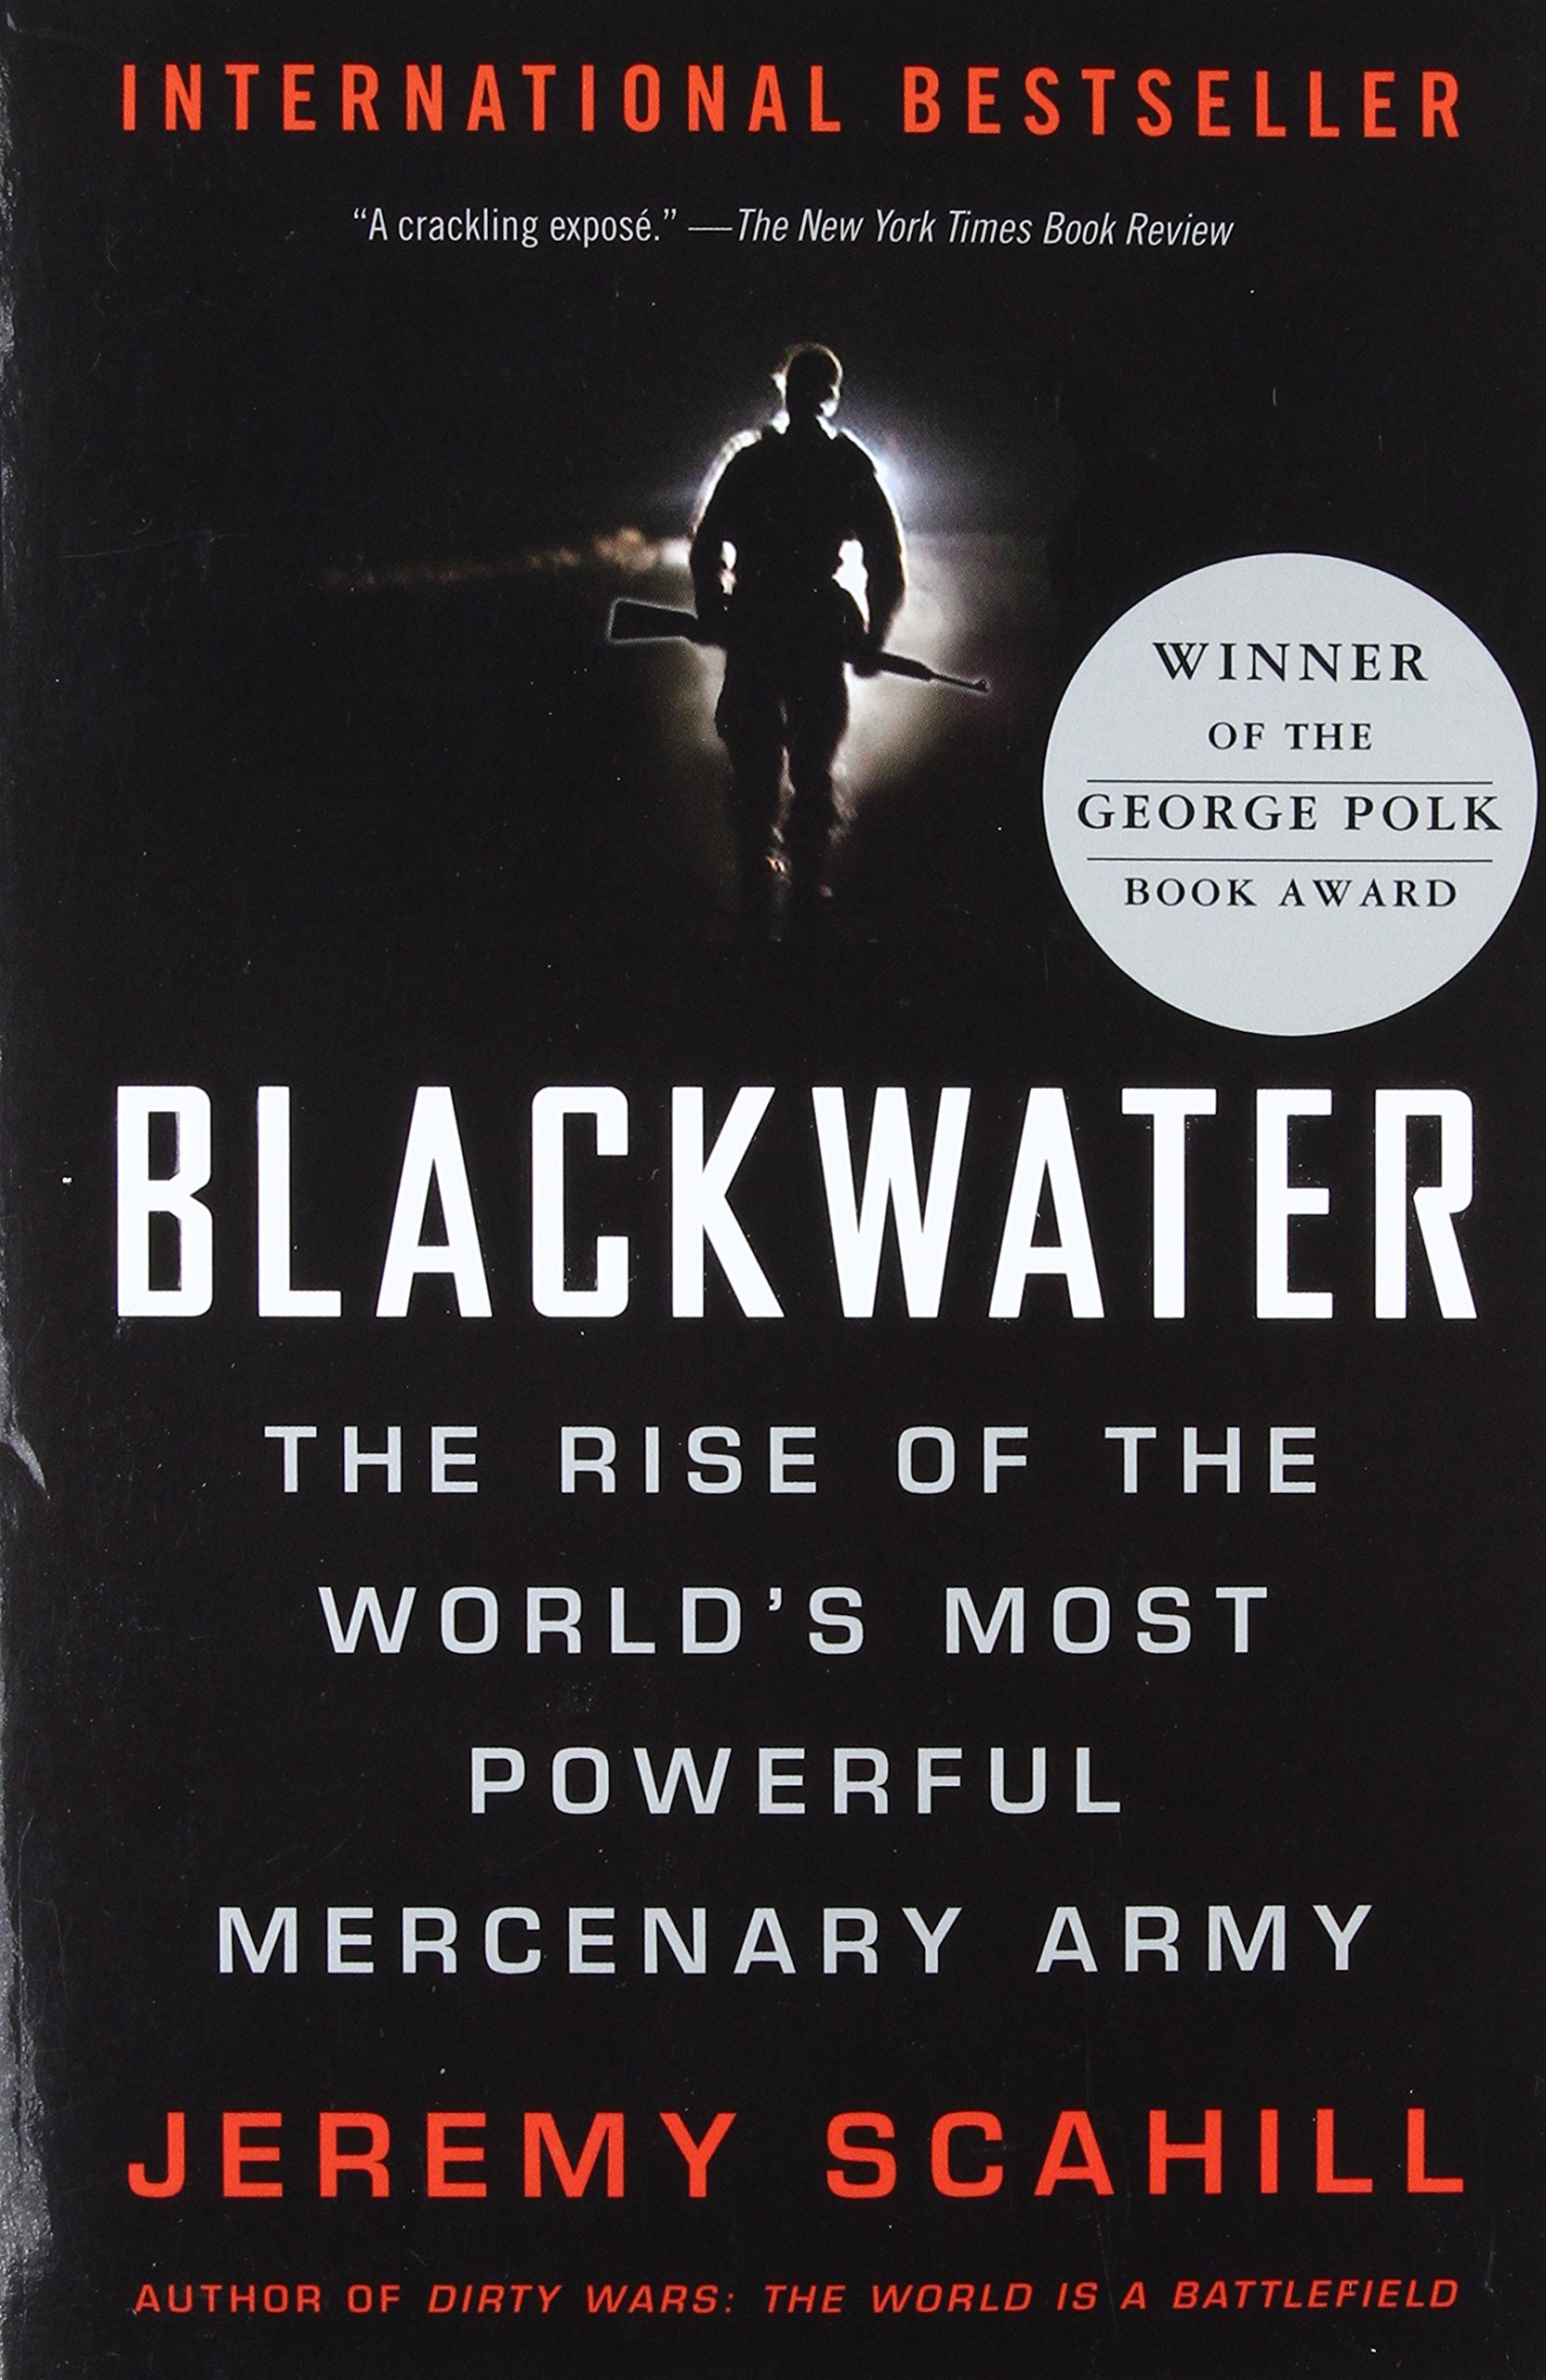 blackwater the rise of the world s most powerful mercenary army